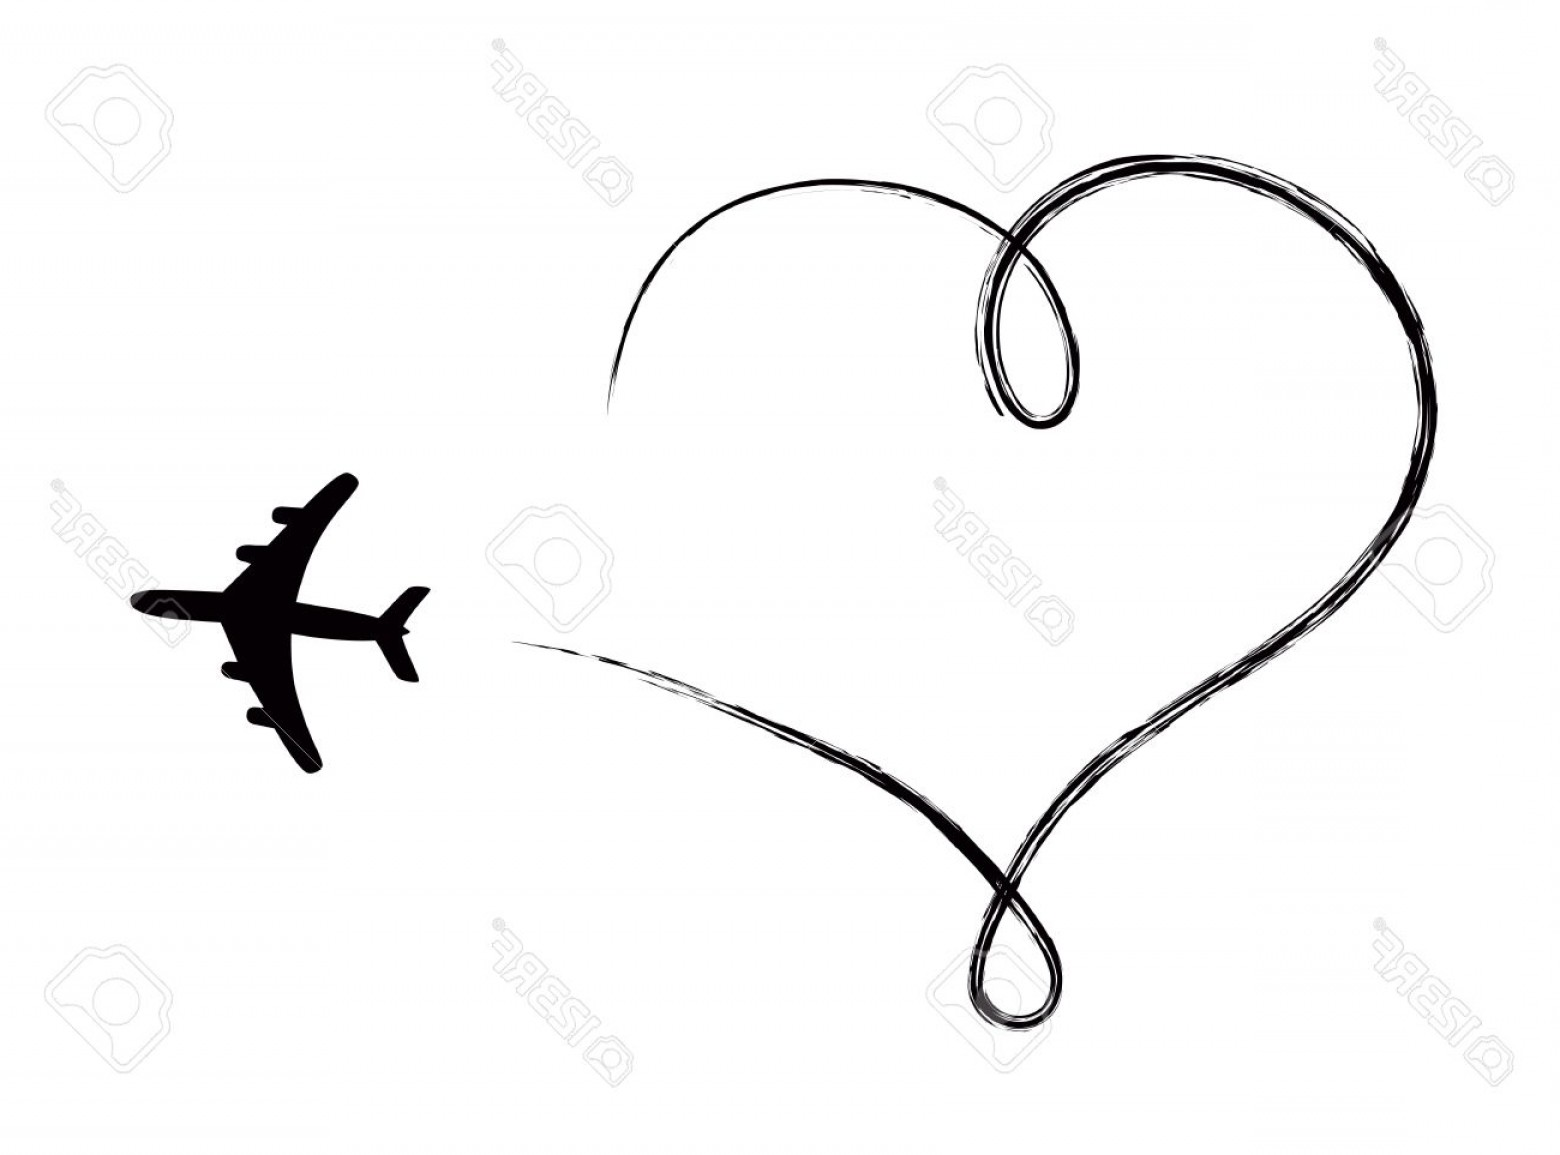 Black Heart And Plane Vector: Photoheart Shaped Icon In Air Made By Plane